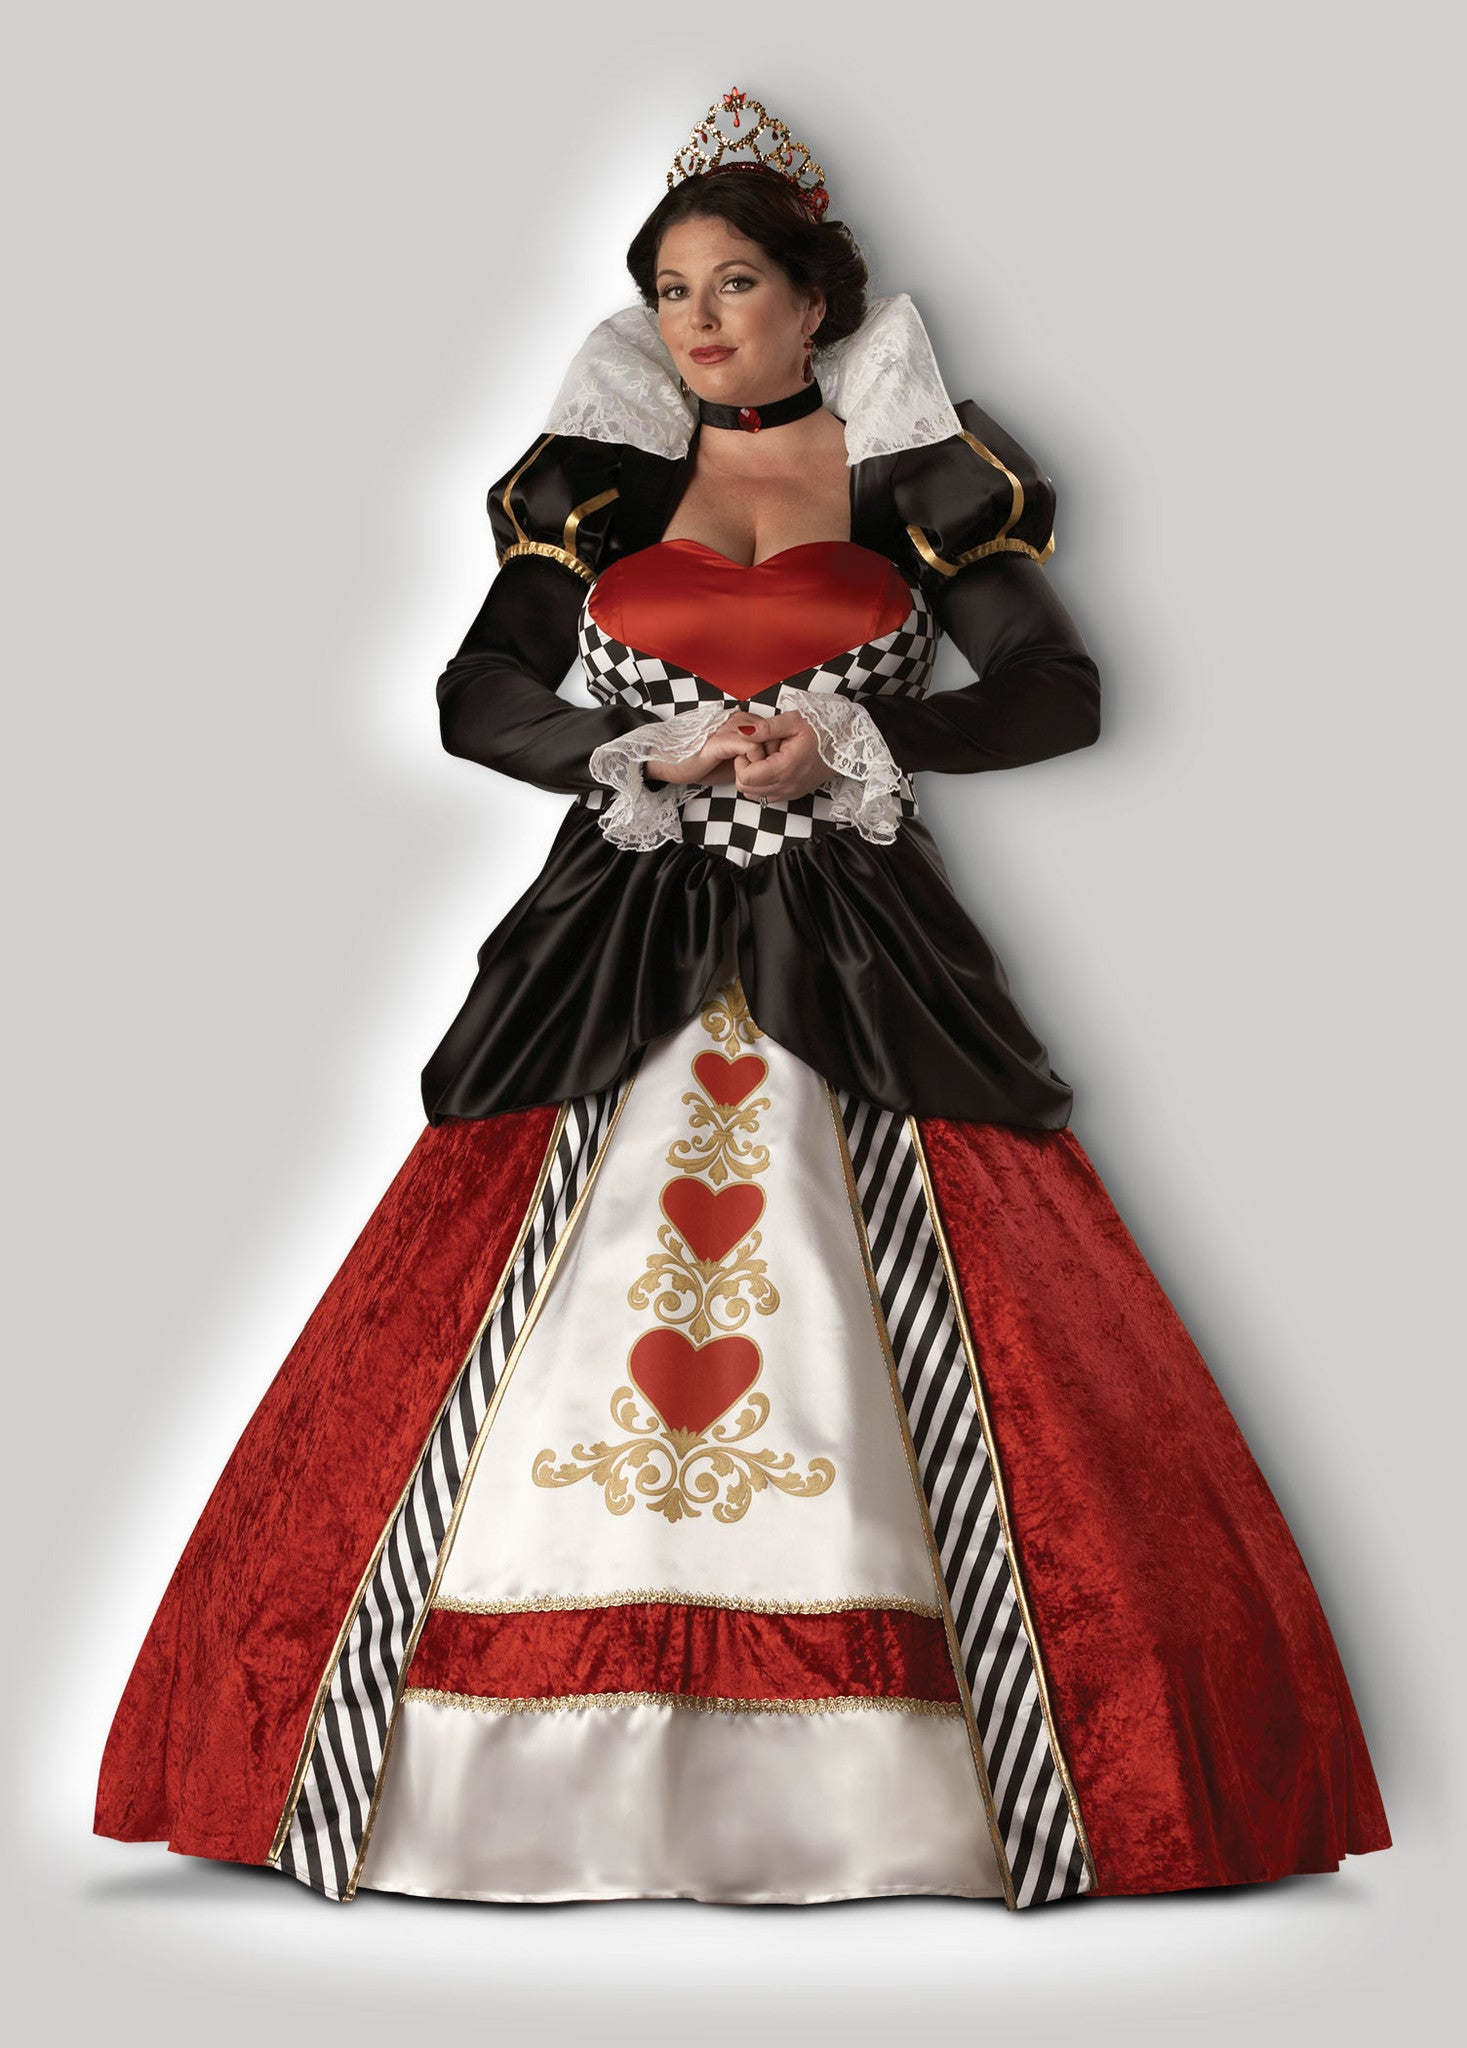 Queen of Hearts CW5017  sc 1 st  InCharacter Costumes & Unique deluxe plus size adult costumes by InCharacter Costumes